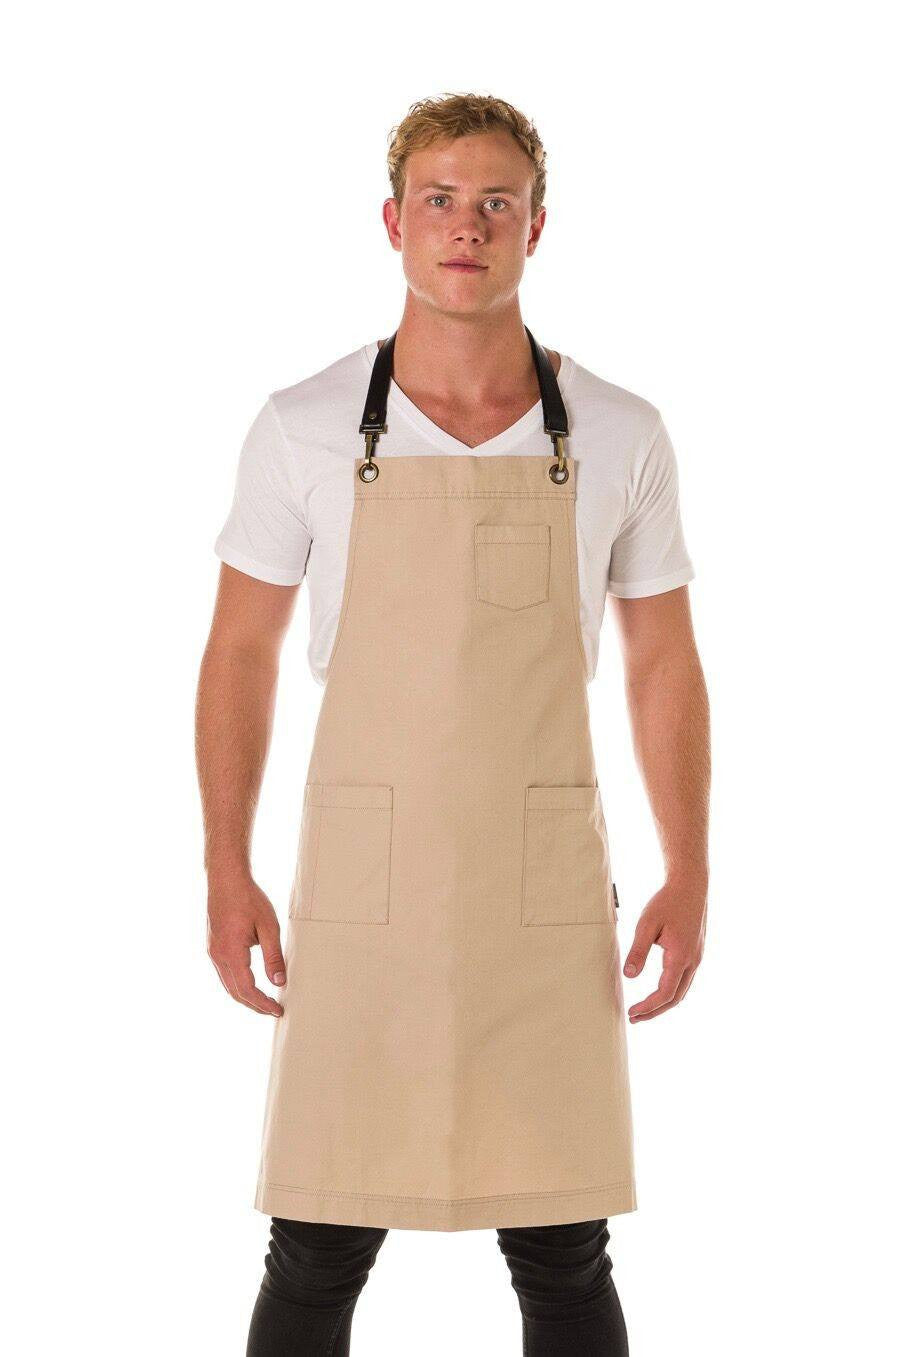 ORLANDO Apron with Leather neck strap and 3 pkts - STONE/ BLACK